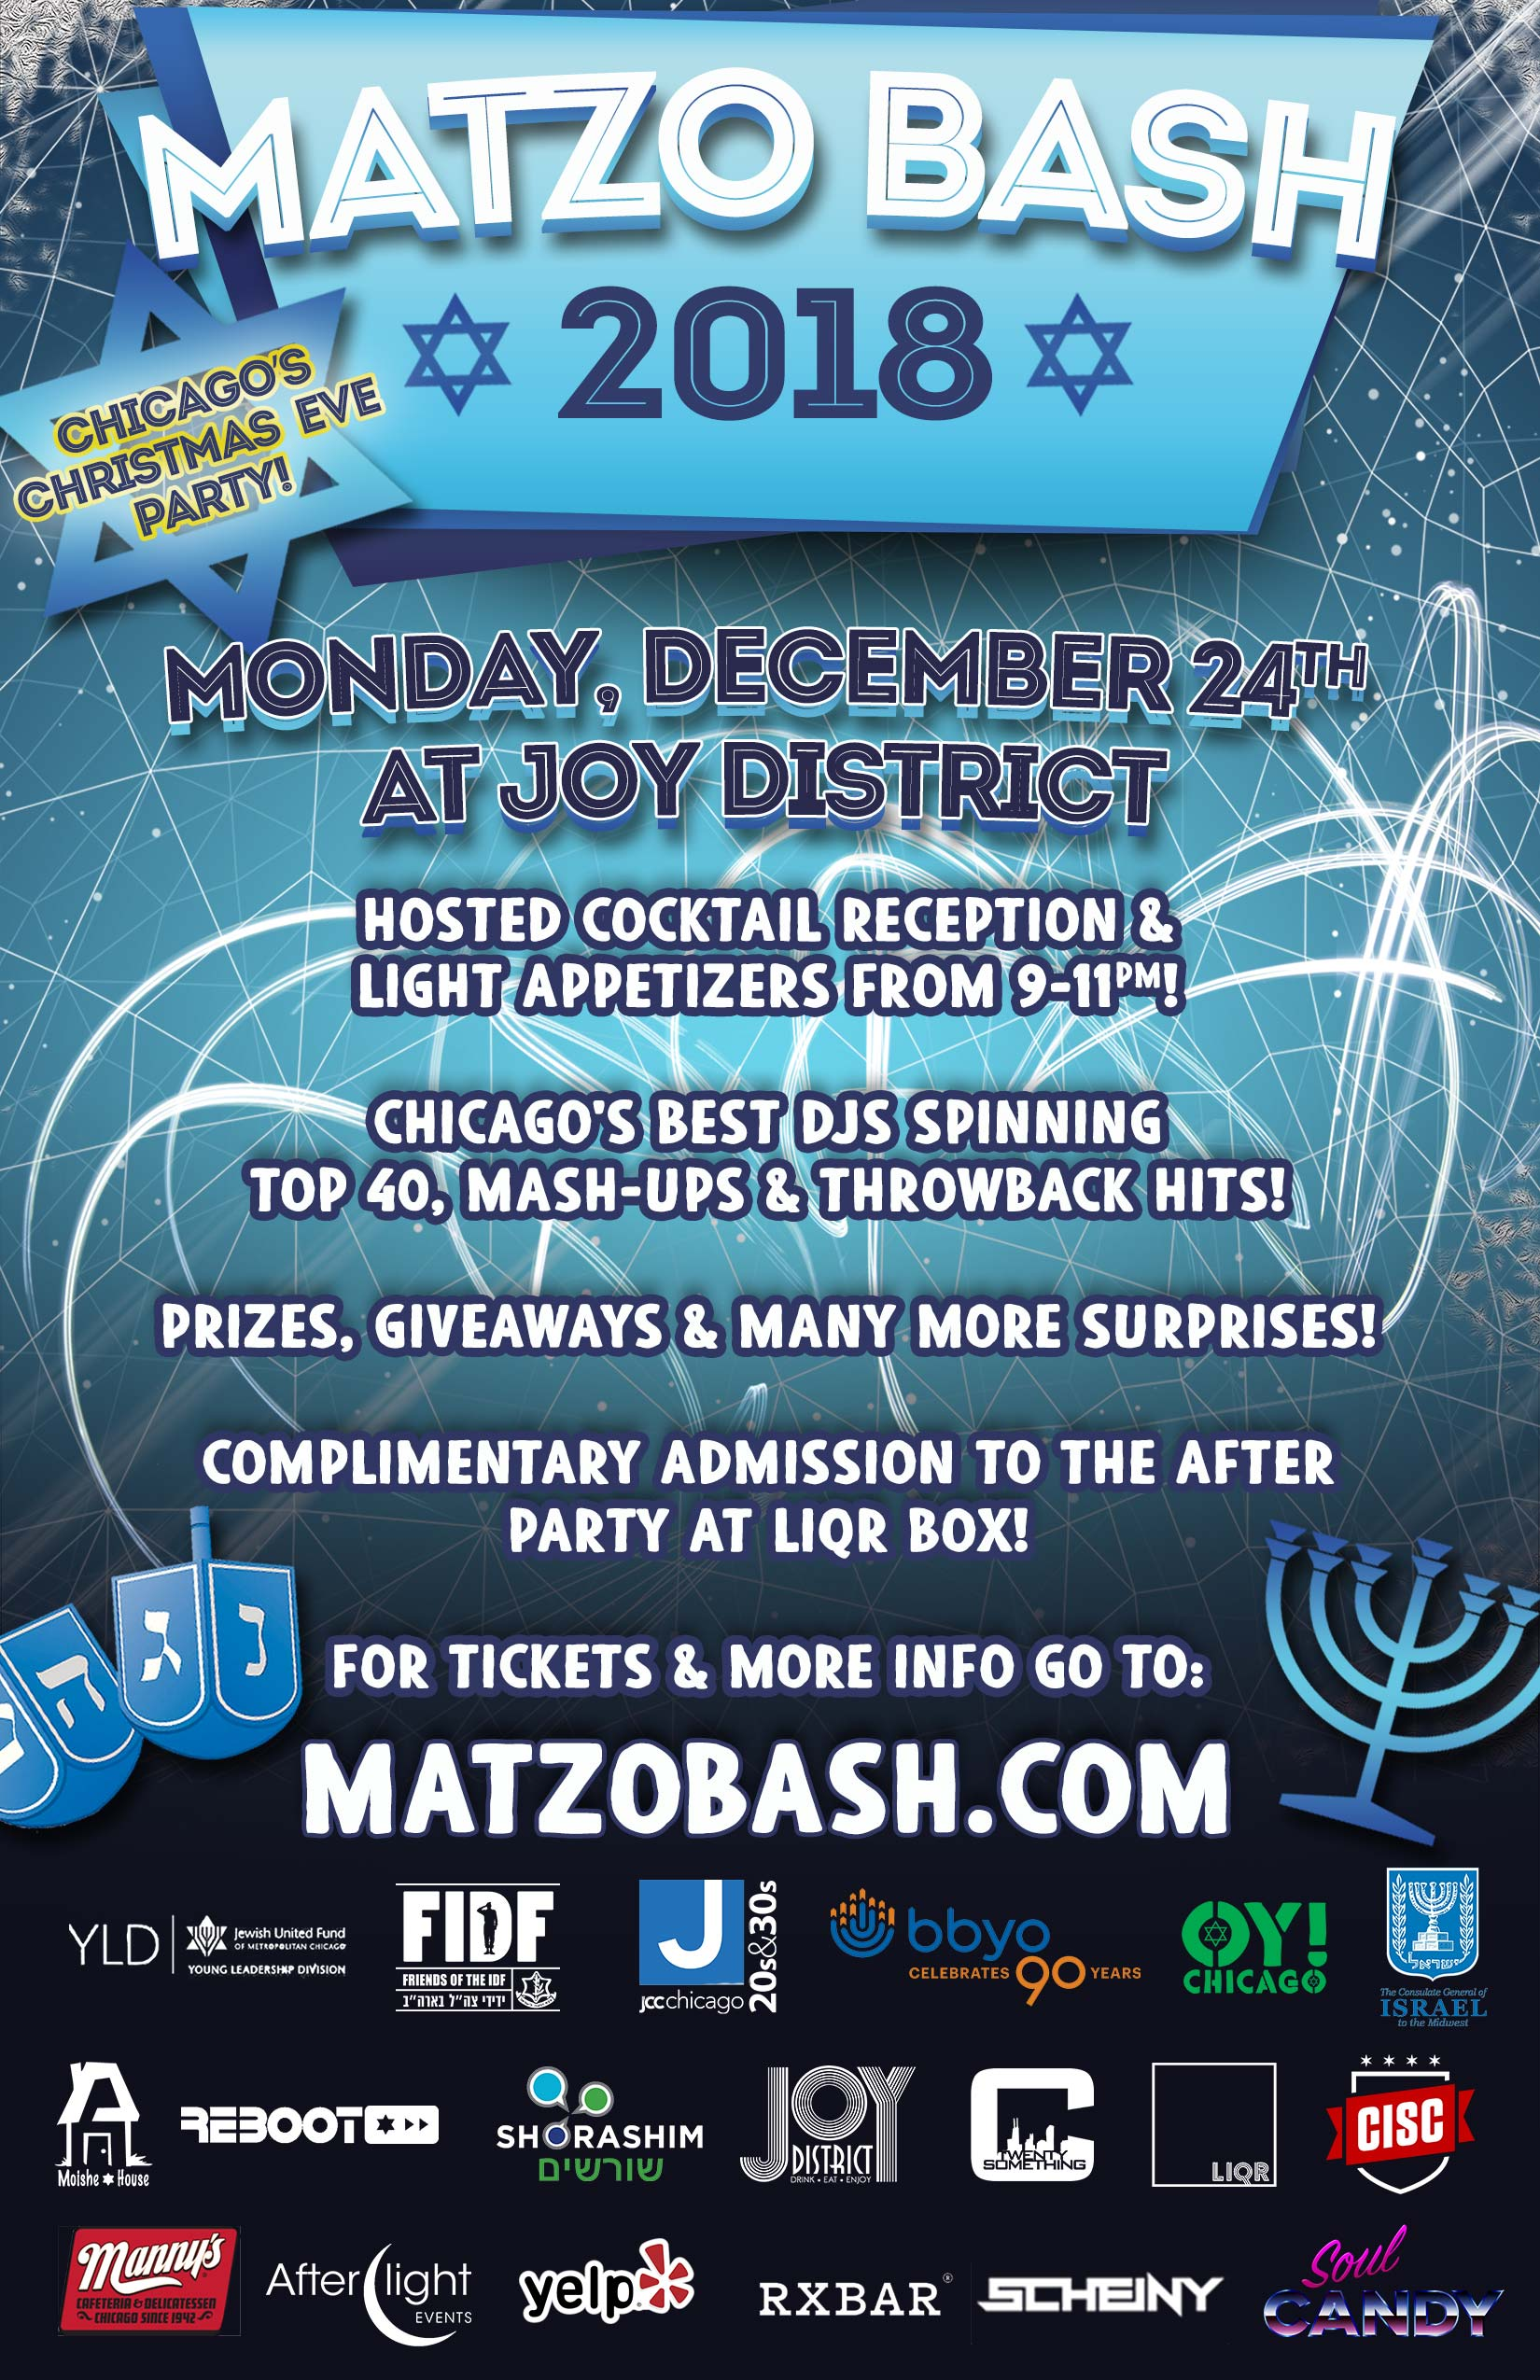 Matzo Bash Party 2018 - Your Discounted Ticket Includes:  Private Hosted Cocktail Reception from 9-11pm and Latkes & Cookies from Manny's! Discounts on VIP table reservations ($150 Bottles of Effen if booked in advance) Two levels of schmoozing & dancing! A portion of the proceeds will benefit: Young Leadership Division of JUF (YLD), JCC 20's & 30's, Shorashim, BBYO, OY! Chicago, Emanuel Congregation, FIDF,  Moishe House & Reboot! And More!